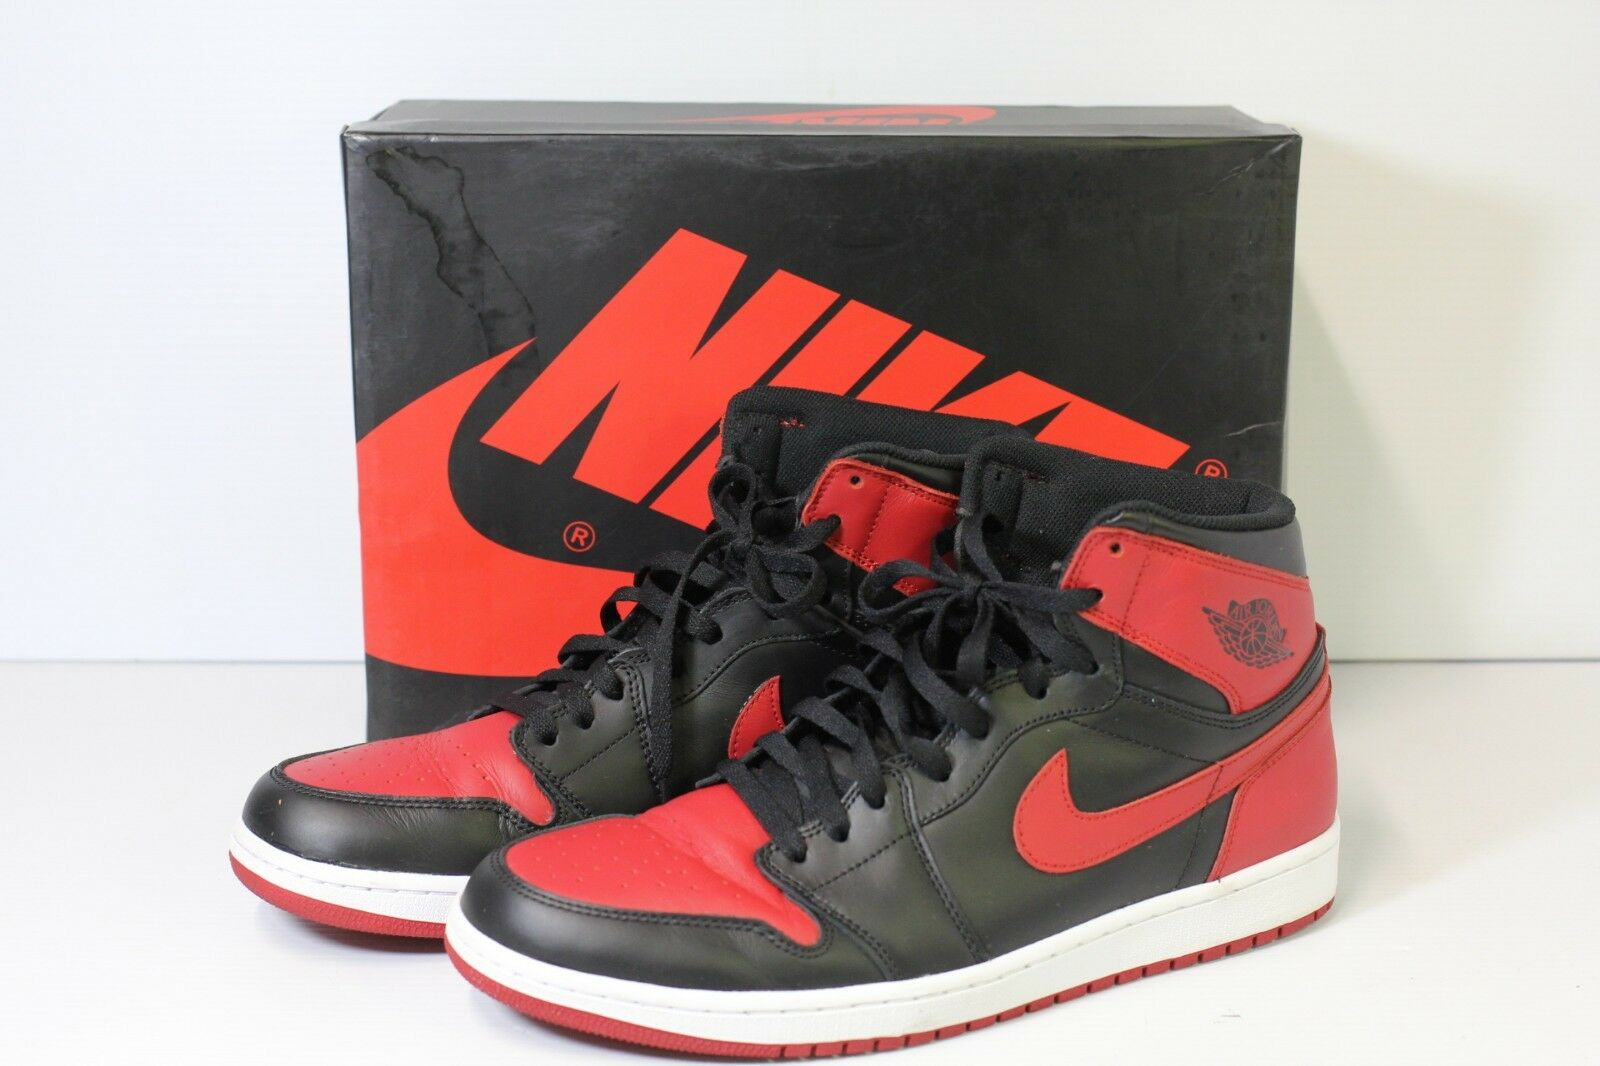 8c96cb6c0142 Nike Air Jordan 1 Retro High OG Bred Black Red 2013 555088-023 DS 13 ...